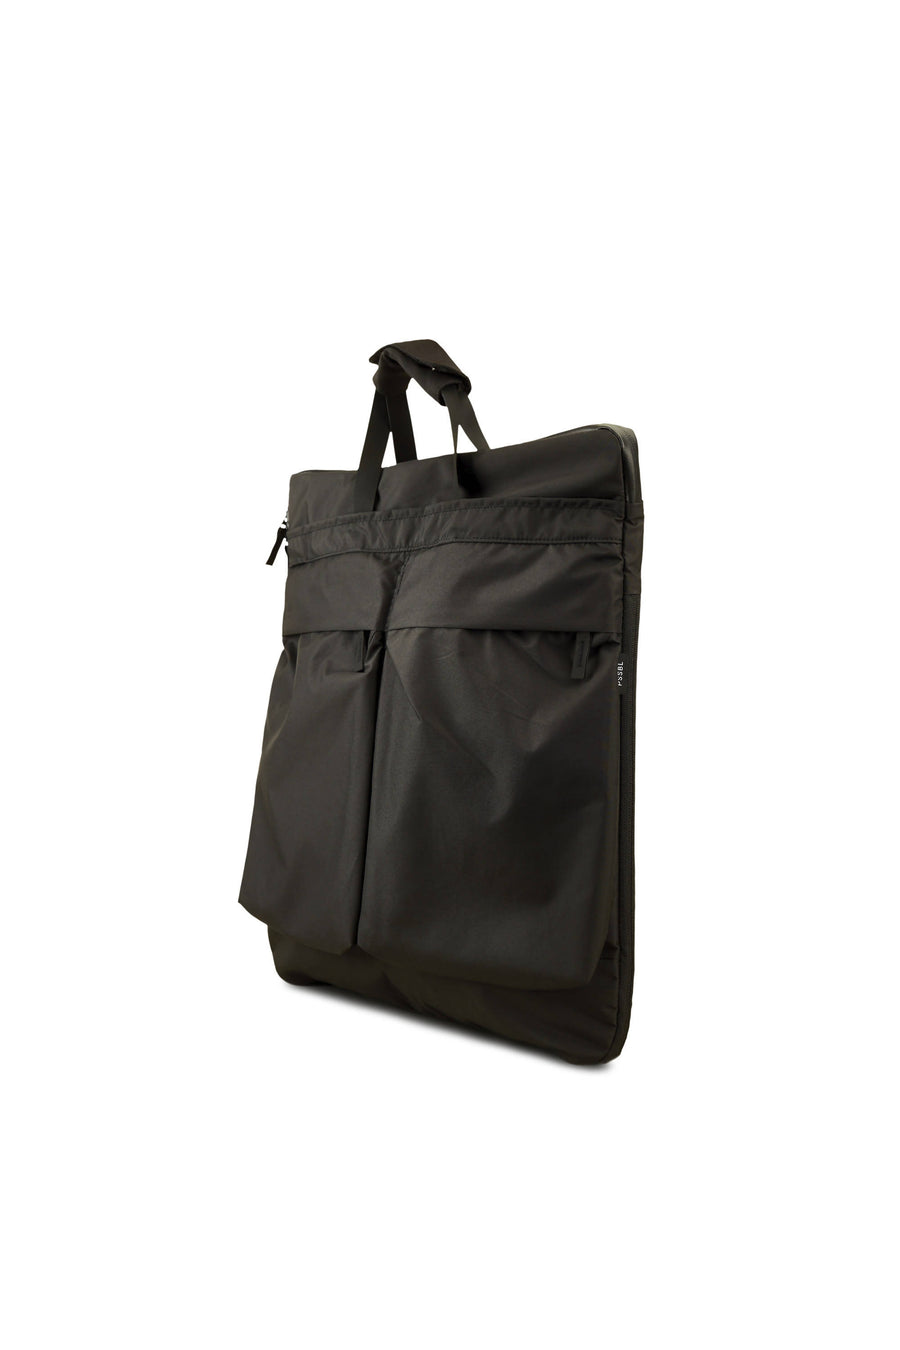 PSSBL THE TOTE BLACK